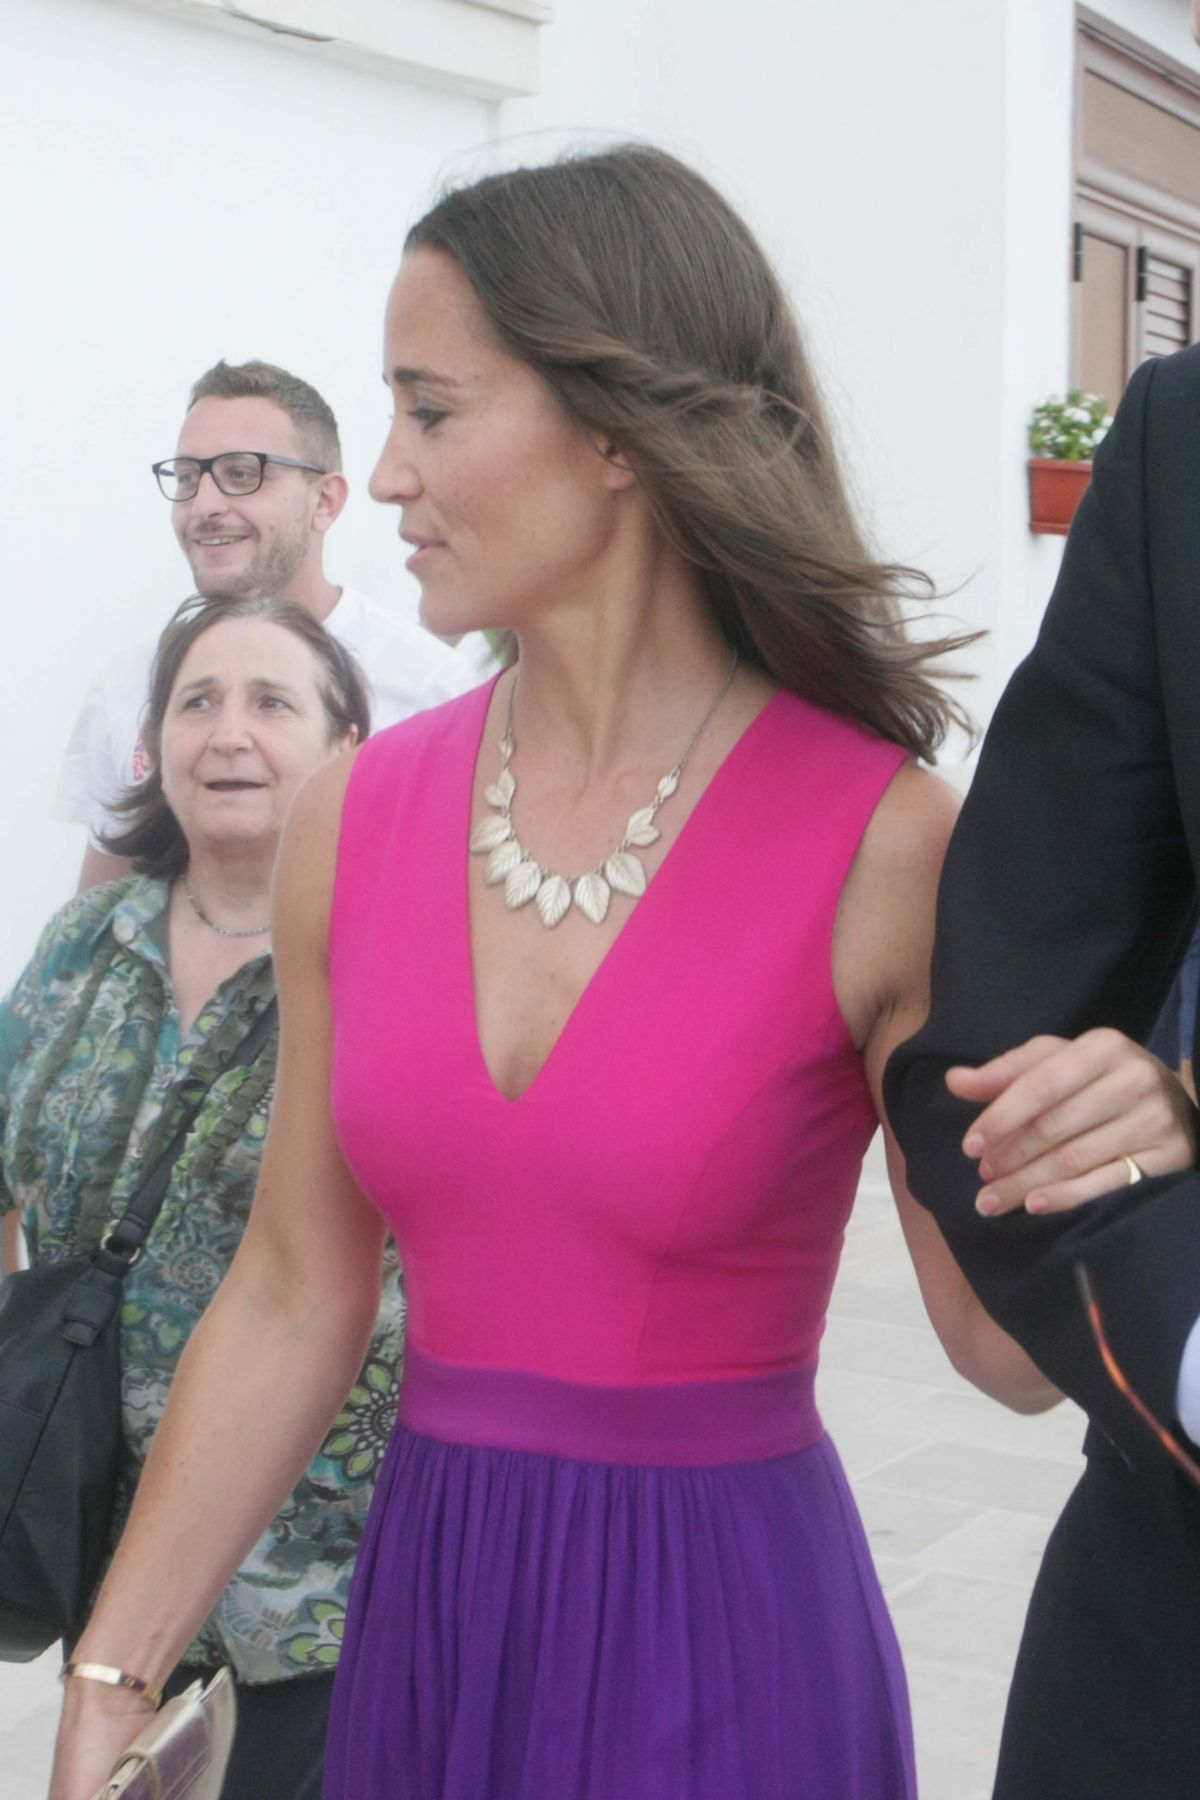 PIPPA MIDDLETON at an Wedding in Italy